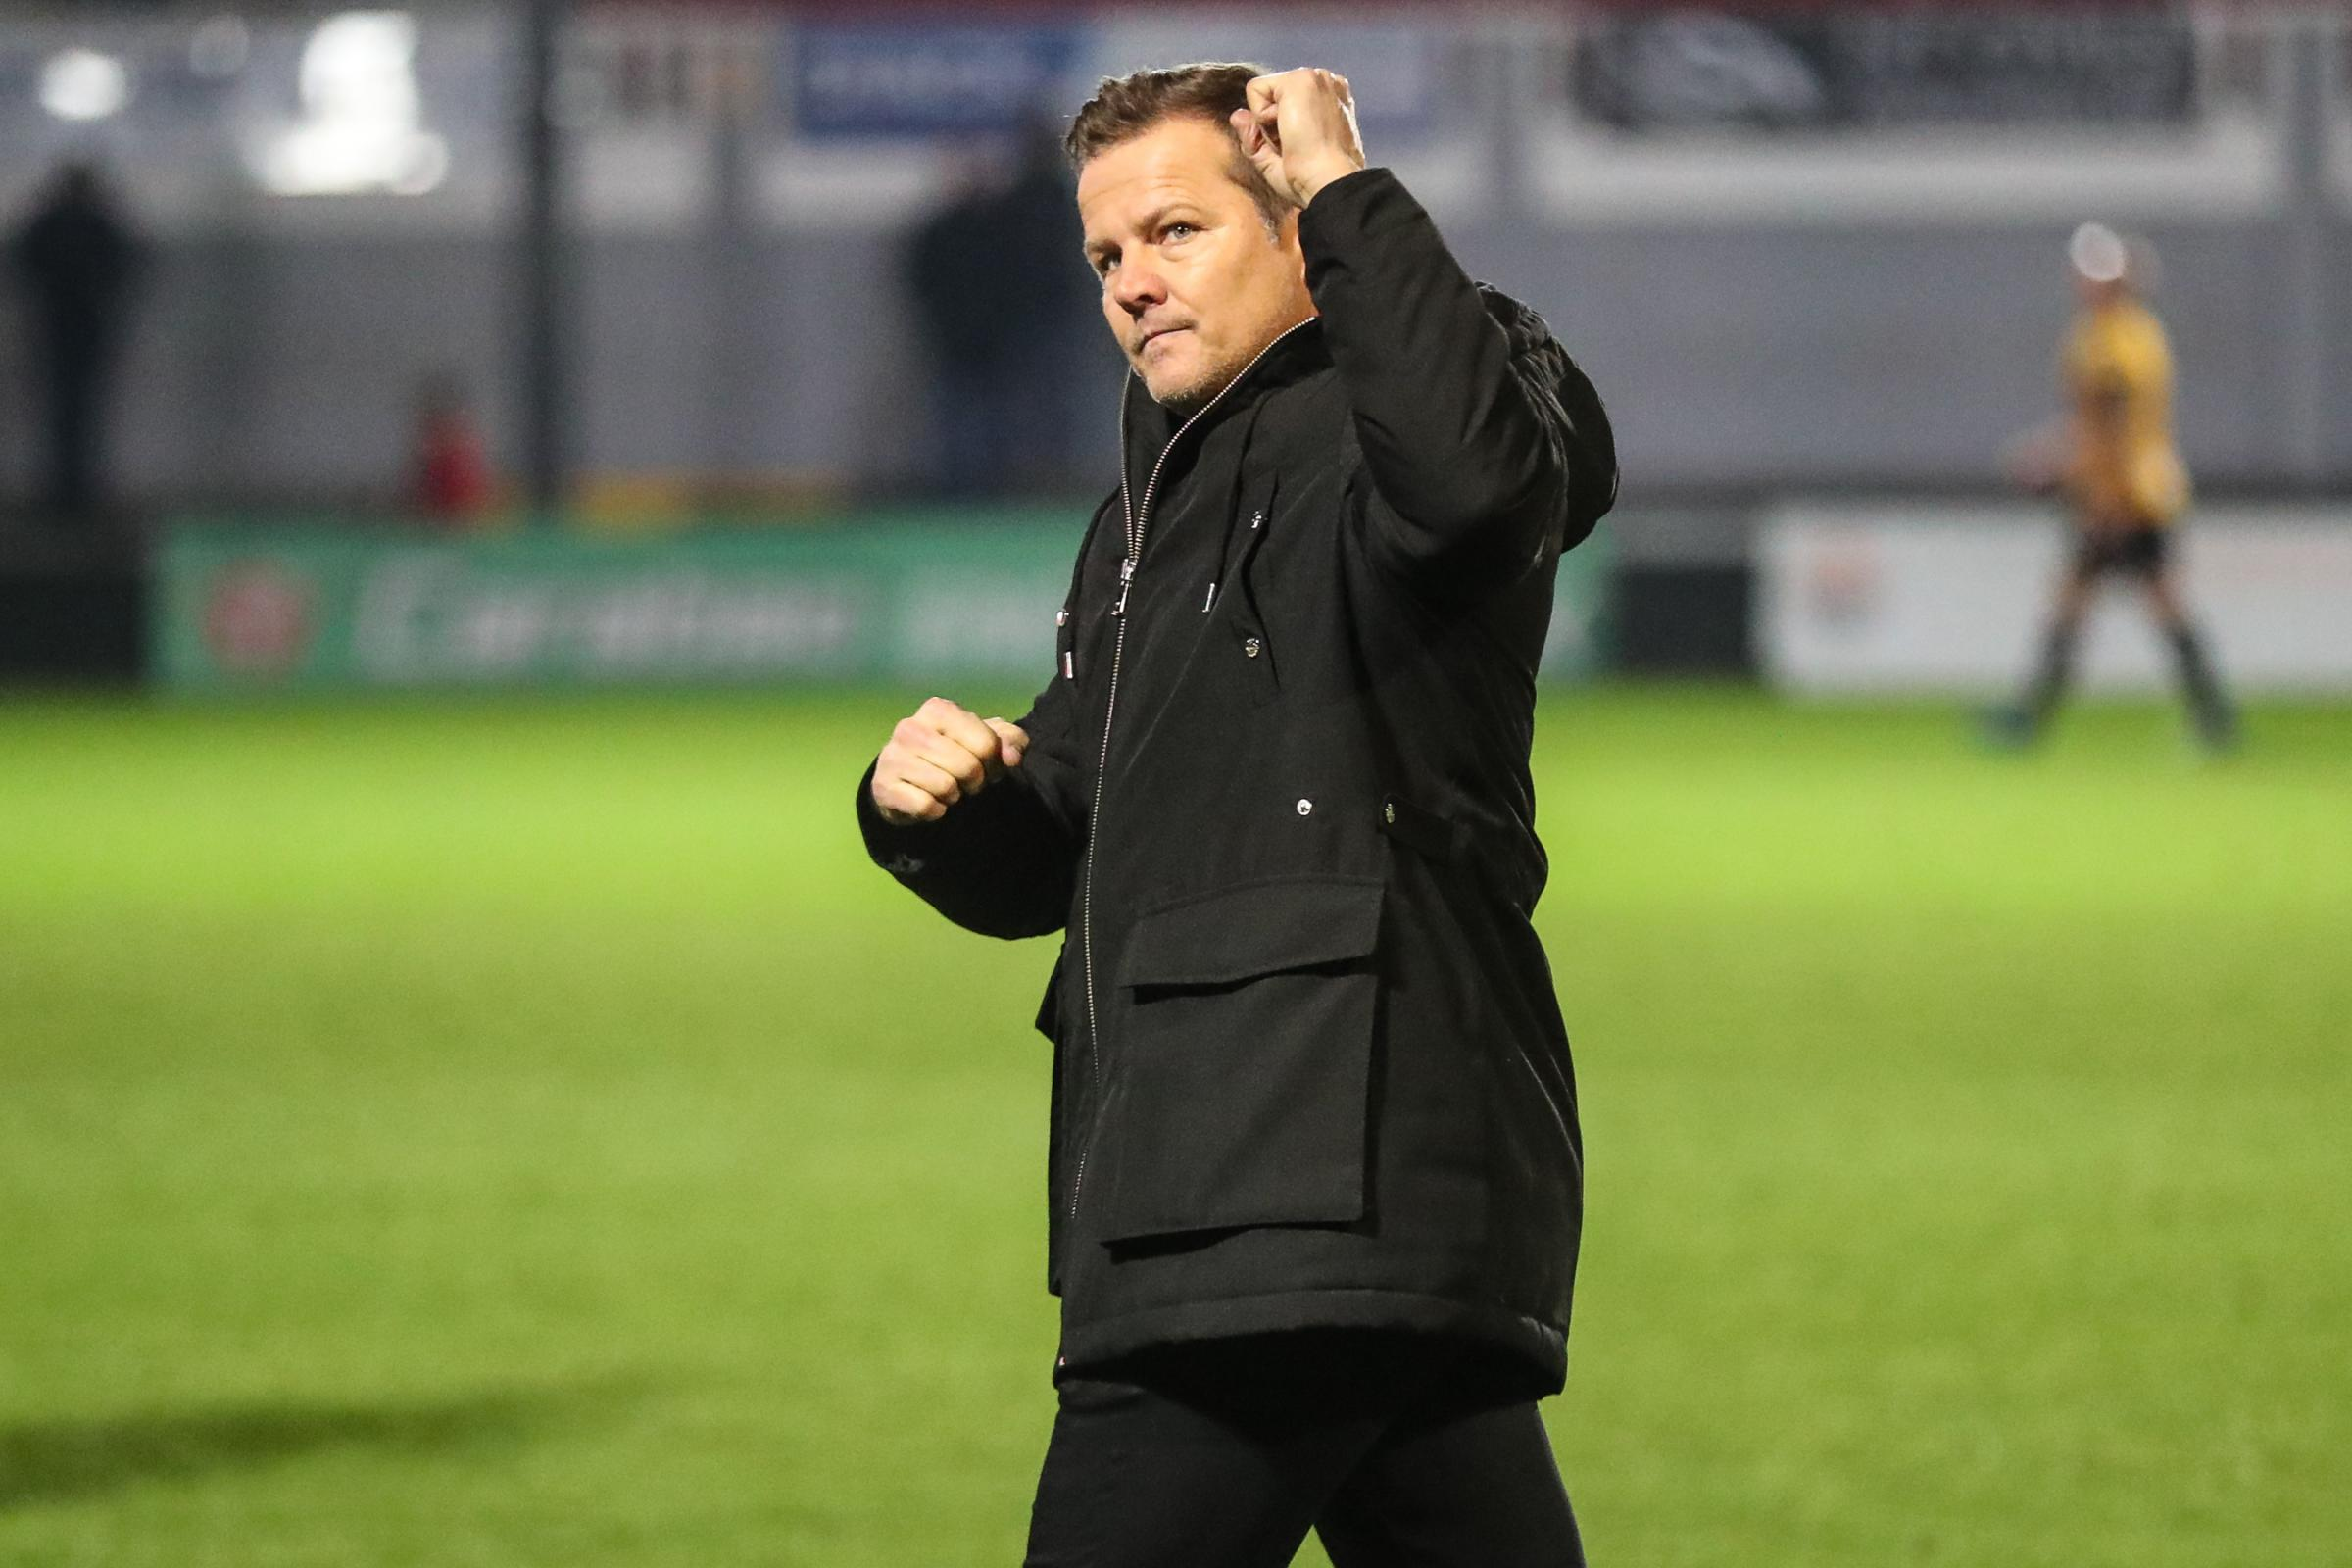 Forest Green Rovers manager, Mark Cooper at the end of the match during the EFL Sky Bet League 2 match between Newport County and Forest Green Rovers at Rodney Parade, Newport, Wales on 26 December 2018.